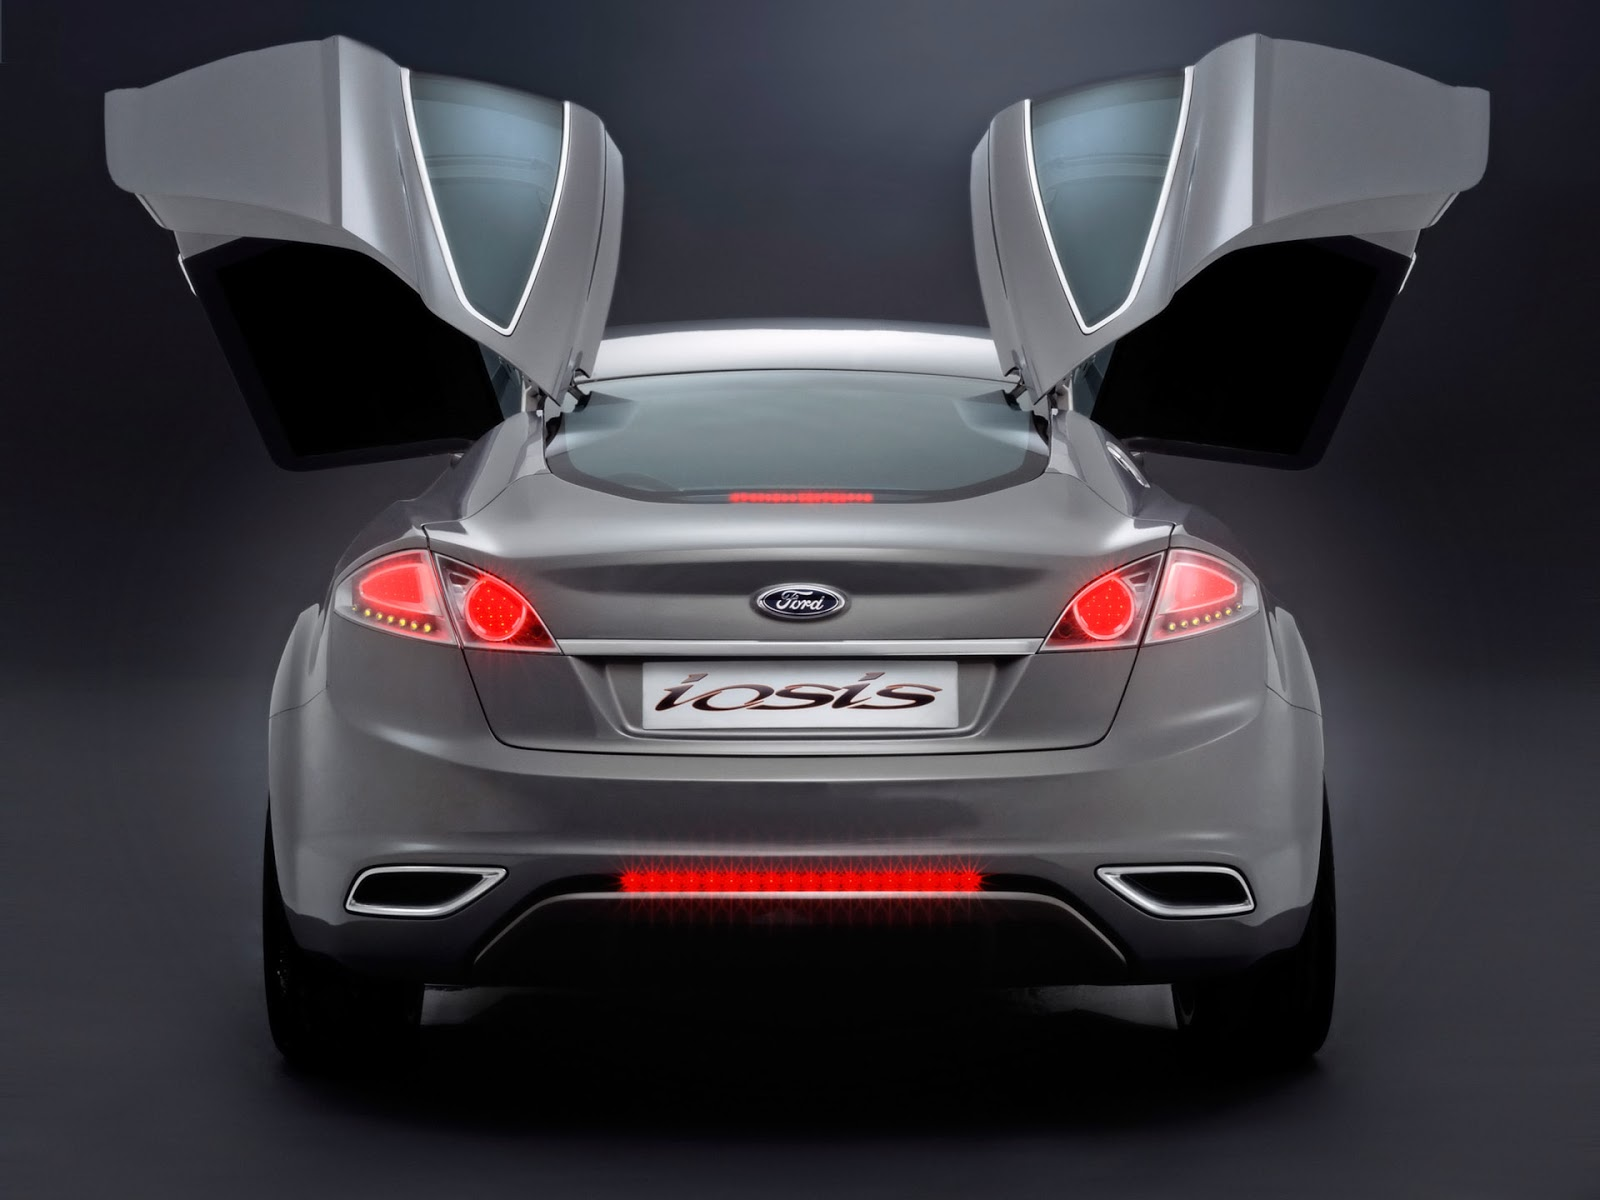 2019 Ford iosis Concept photo - 2